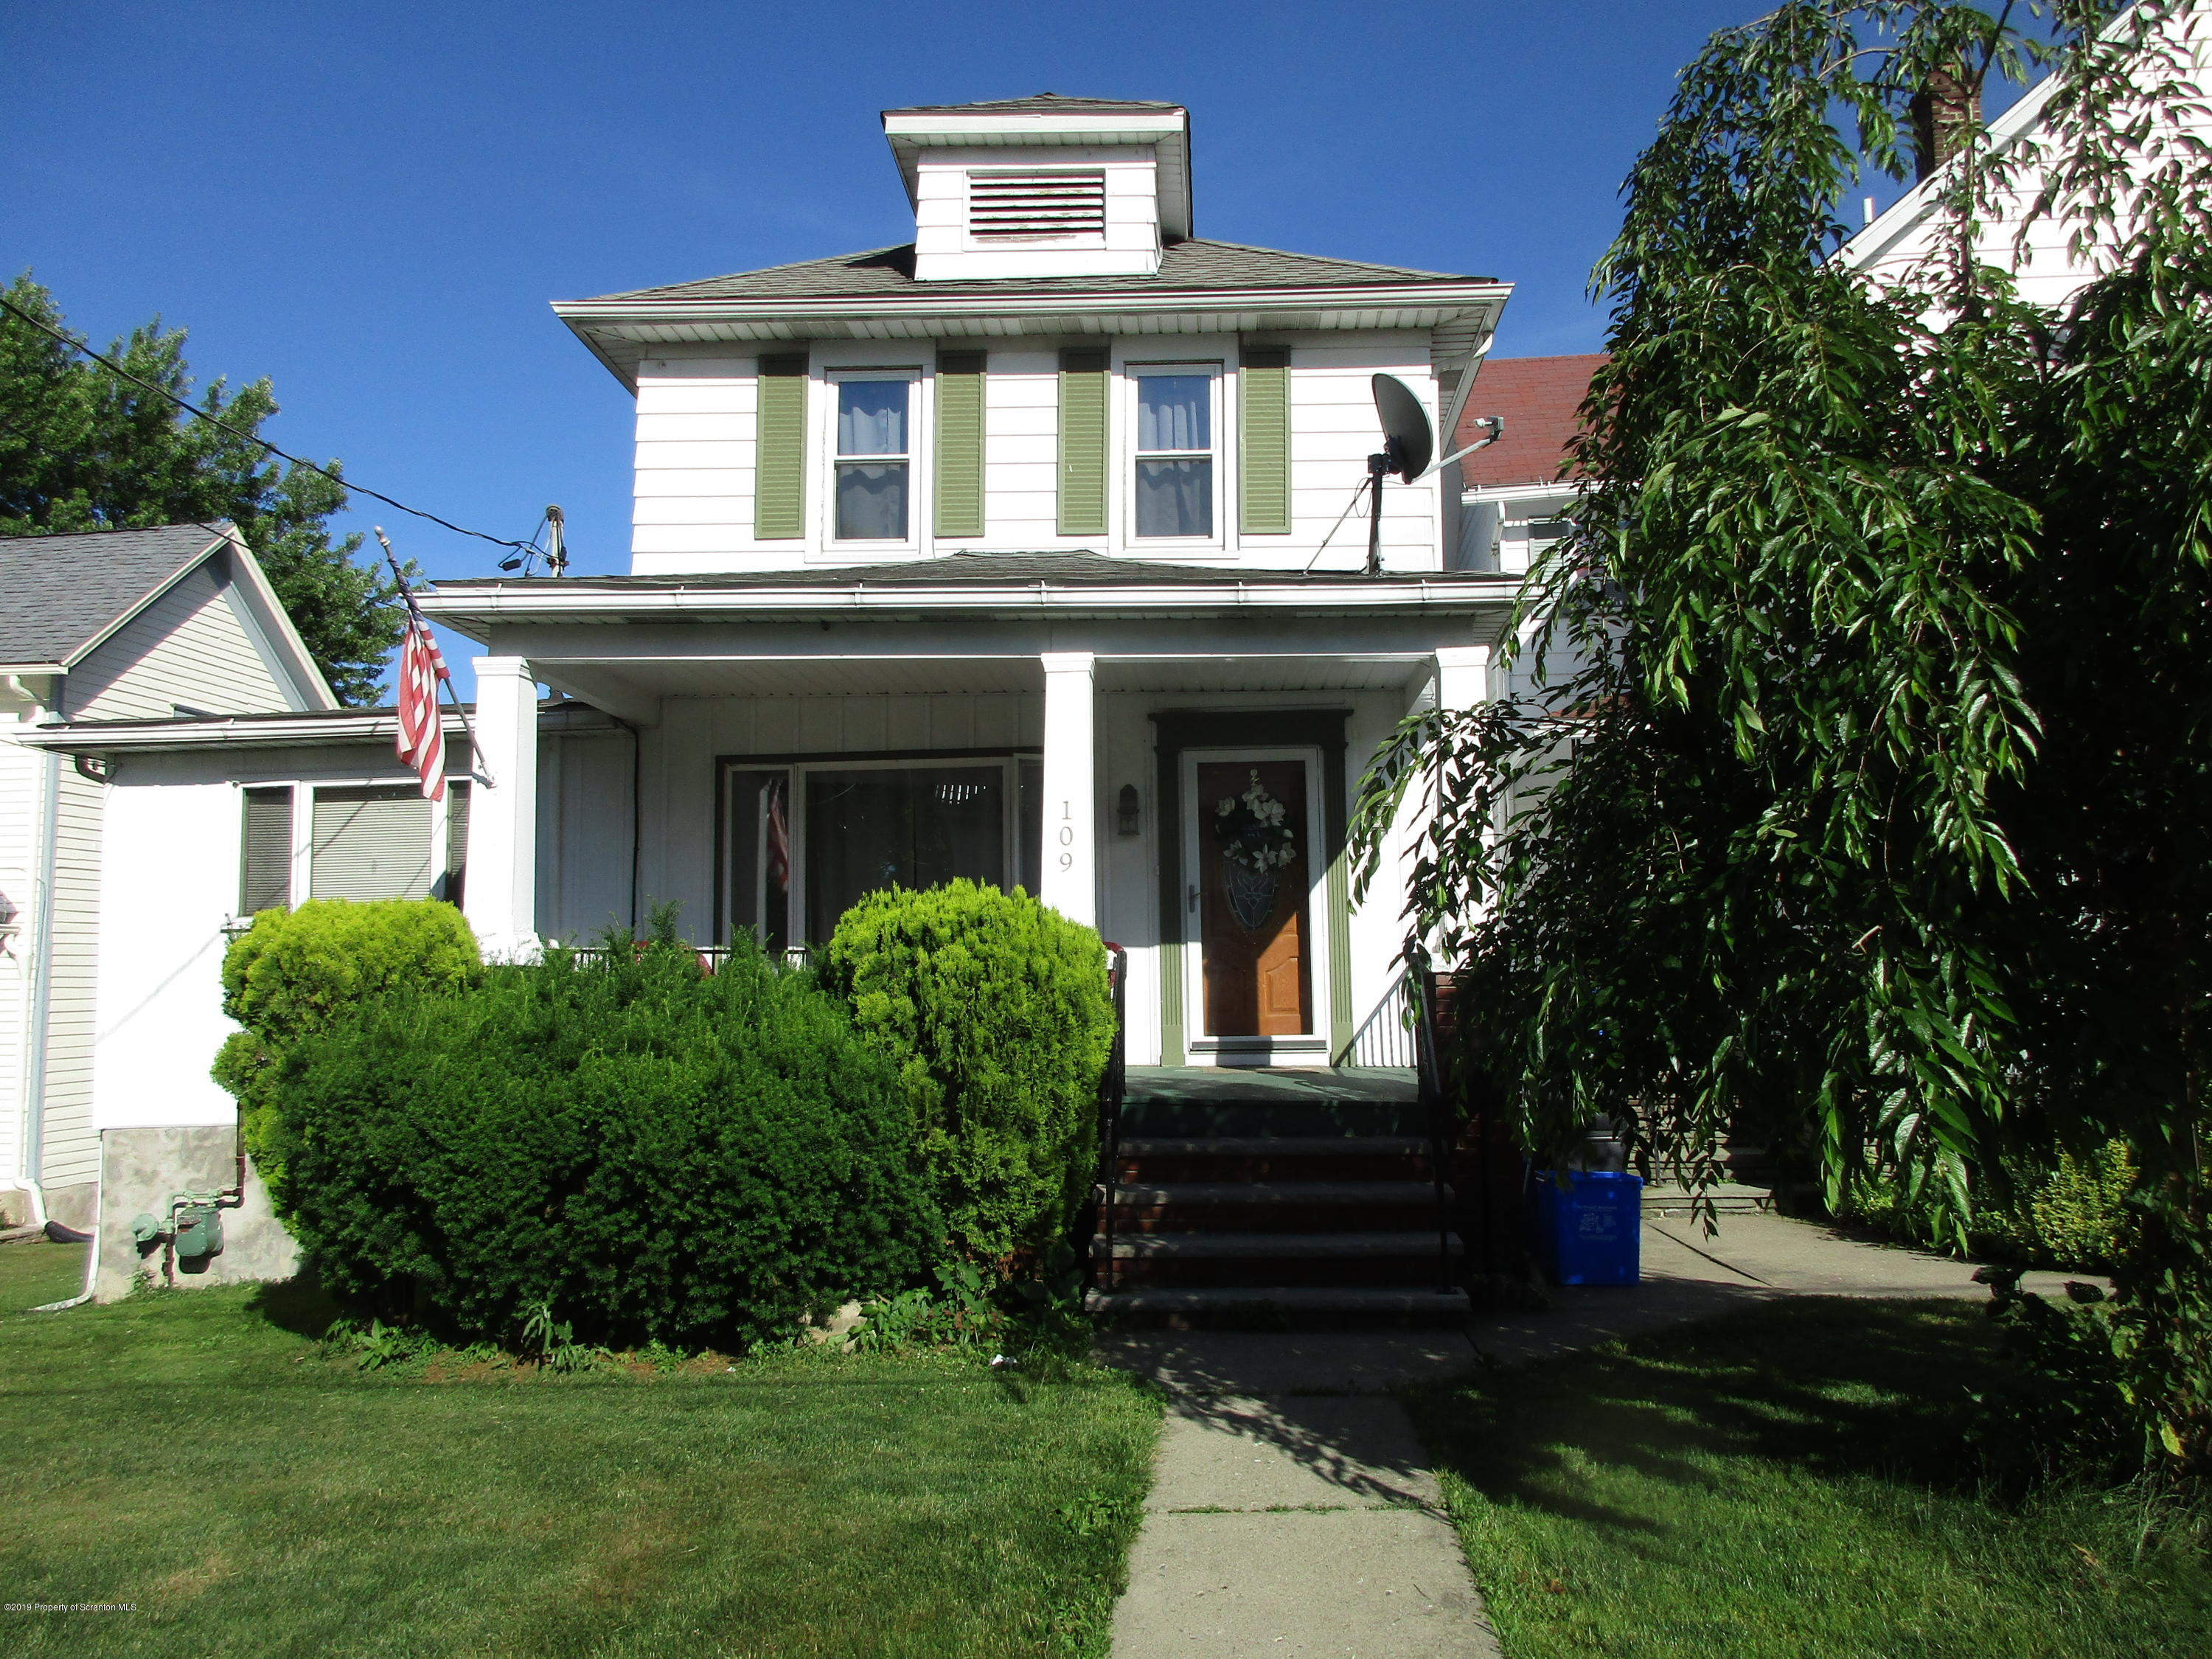 109 Clay Ave, Olyphant, Pennsylvania 18447, 5 Bedrooms Bedrooms, 7 Rooms Rooms,2 BathroomsBathrooms,Single Family,For Sale,Clay,19-96